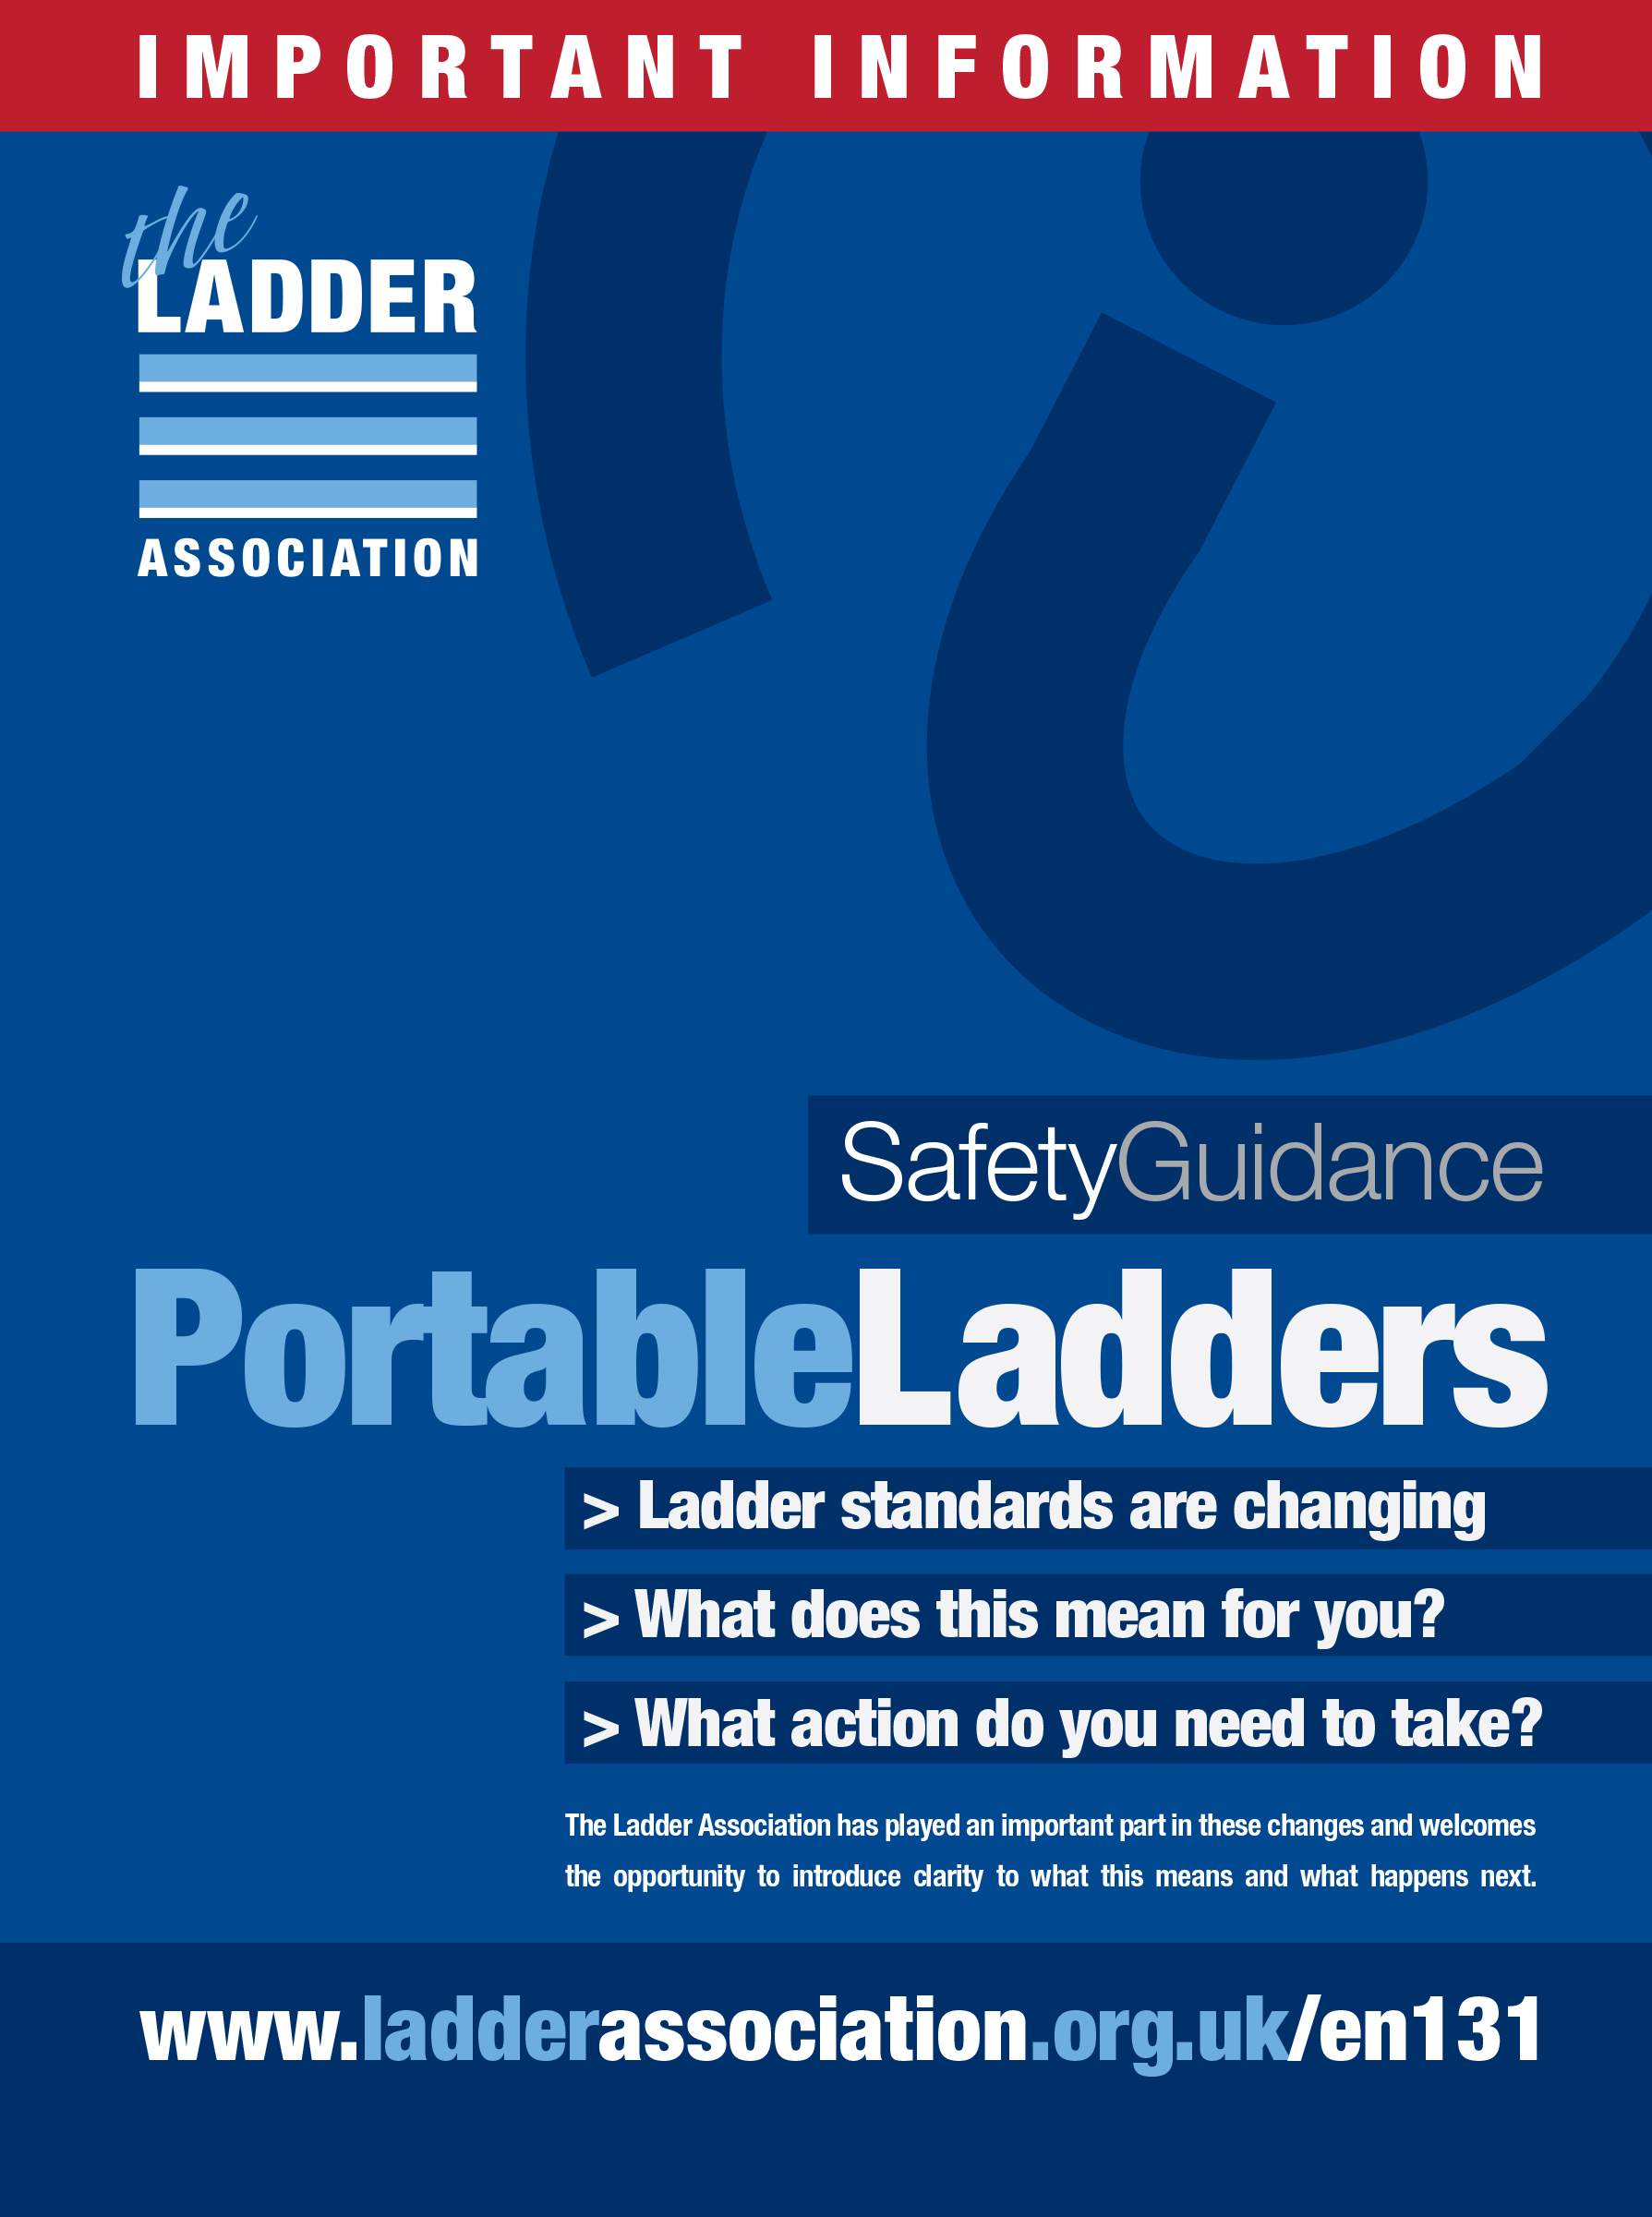 Ladder Association discussing changes to European and UK ladder standards at Trade Fair & Convention